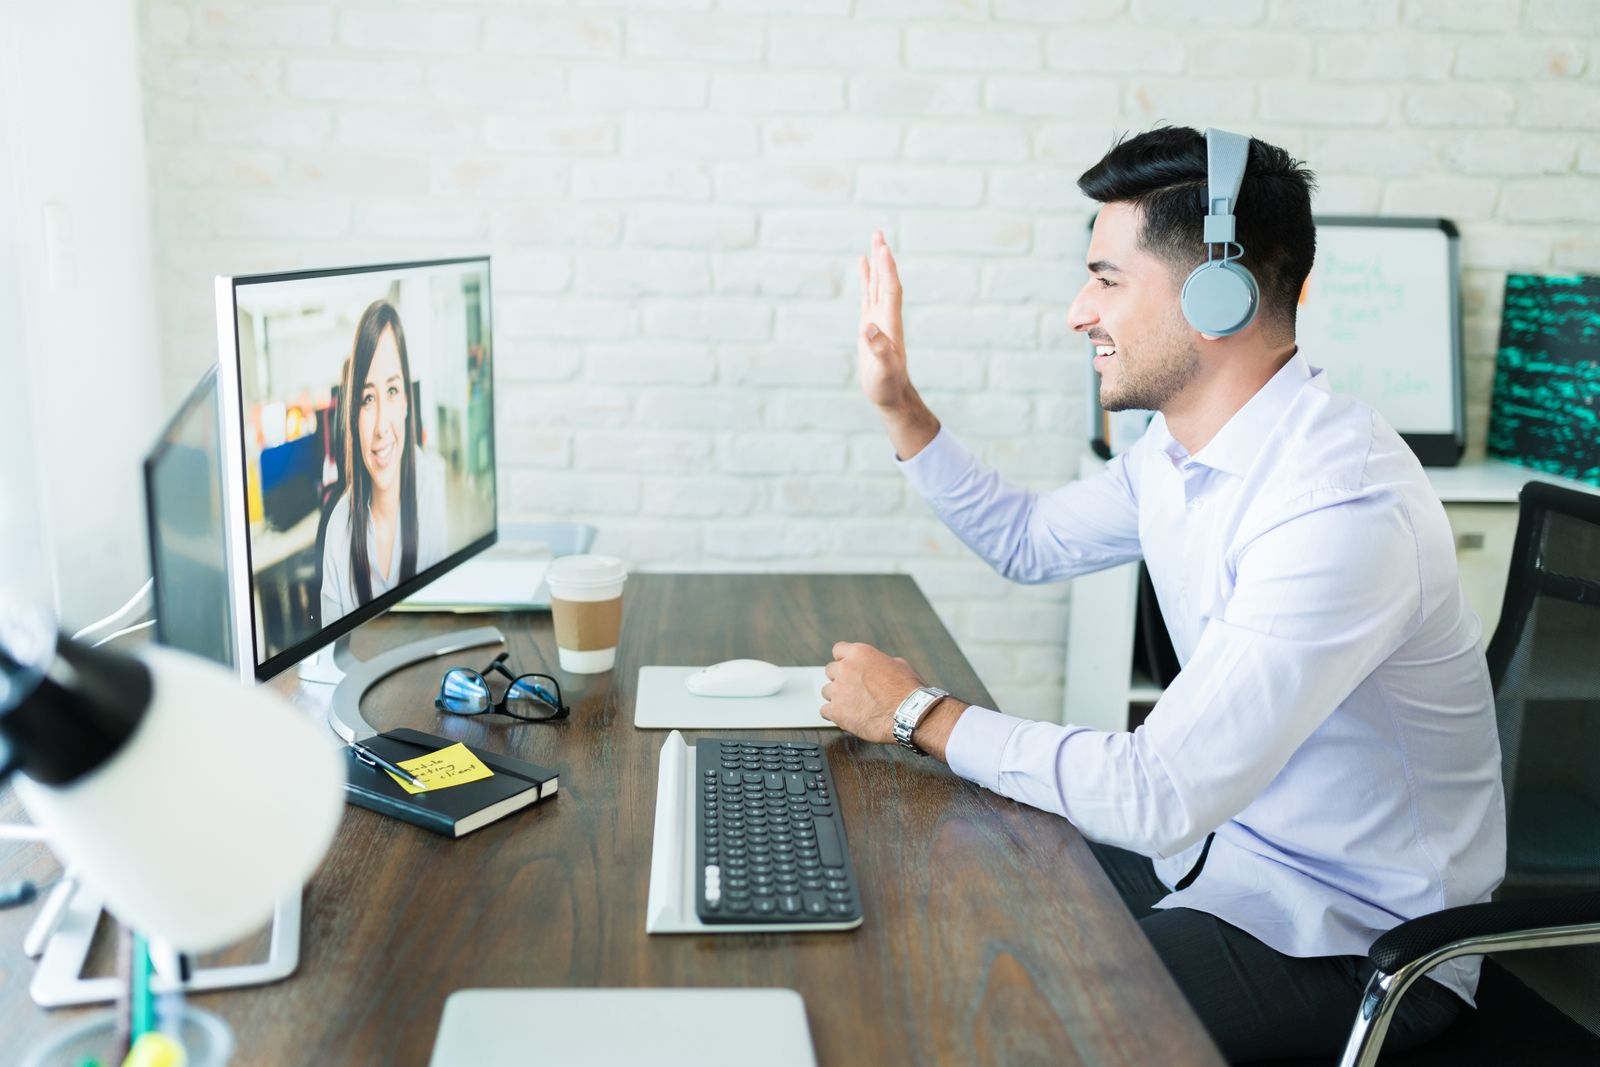 Man videoconferencing with a colleague